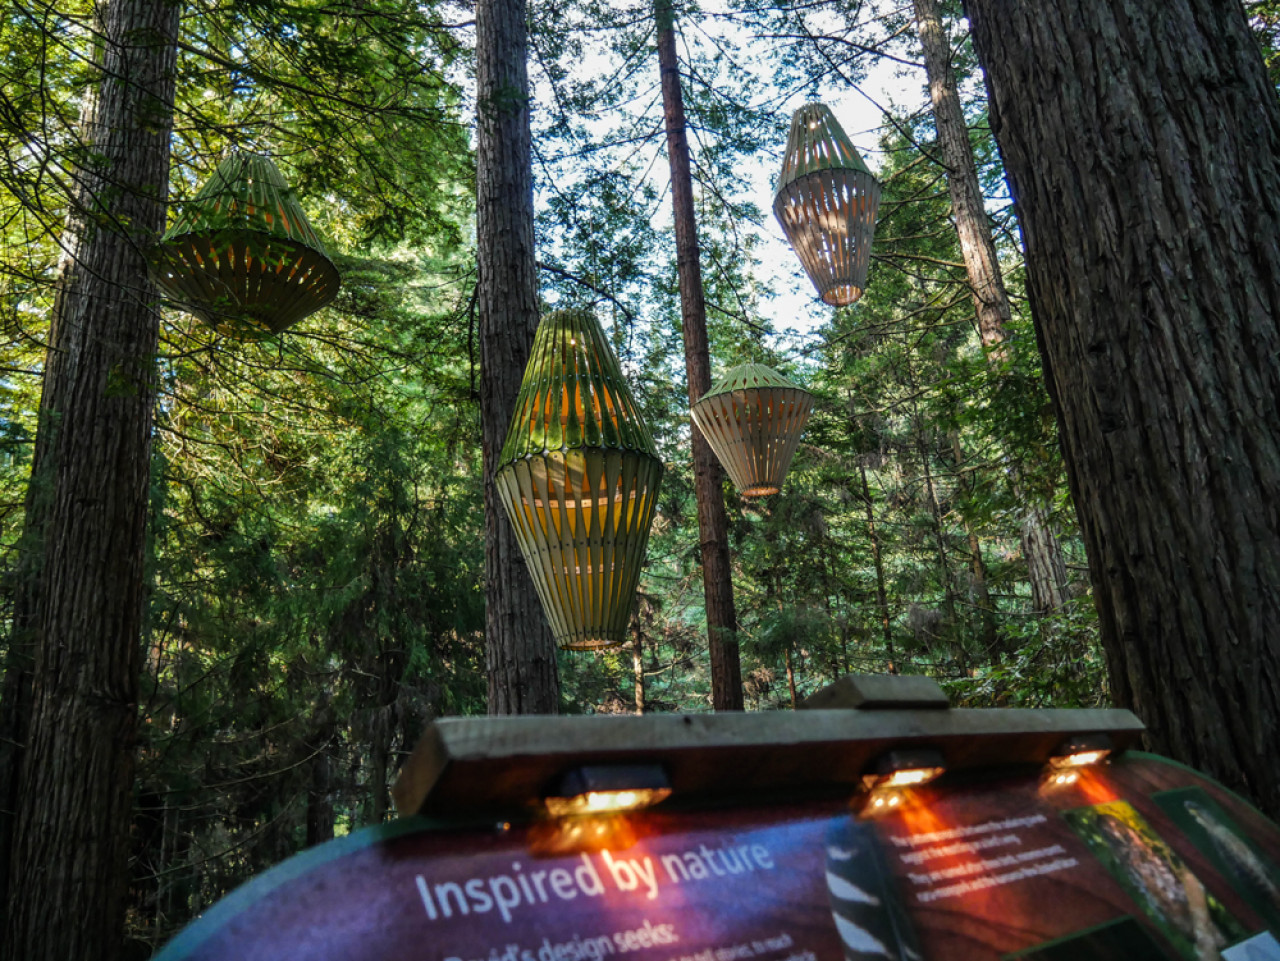 For the nighttime experience, 30 special lanterns were created by David Trubridge, a well-known sustainability designer.